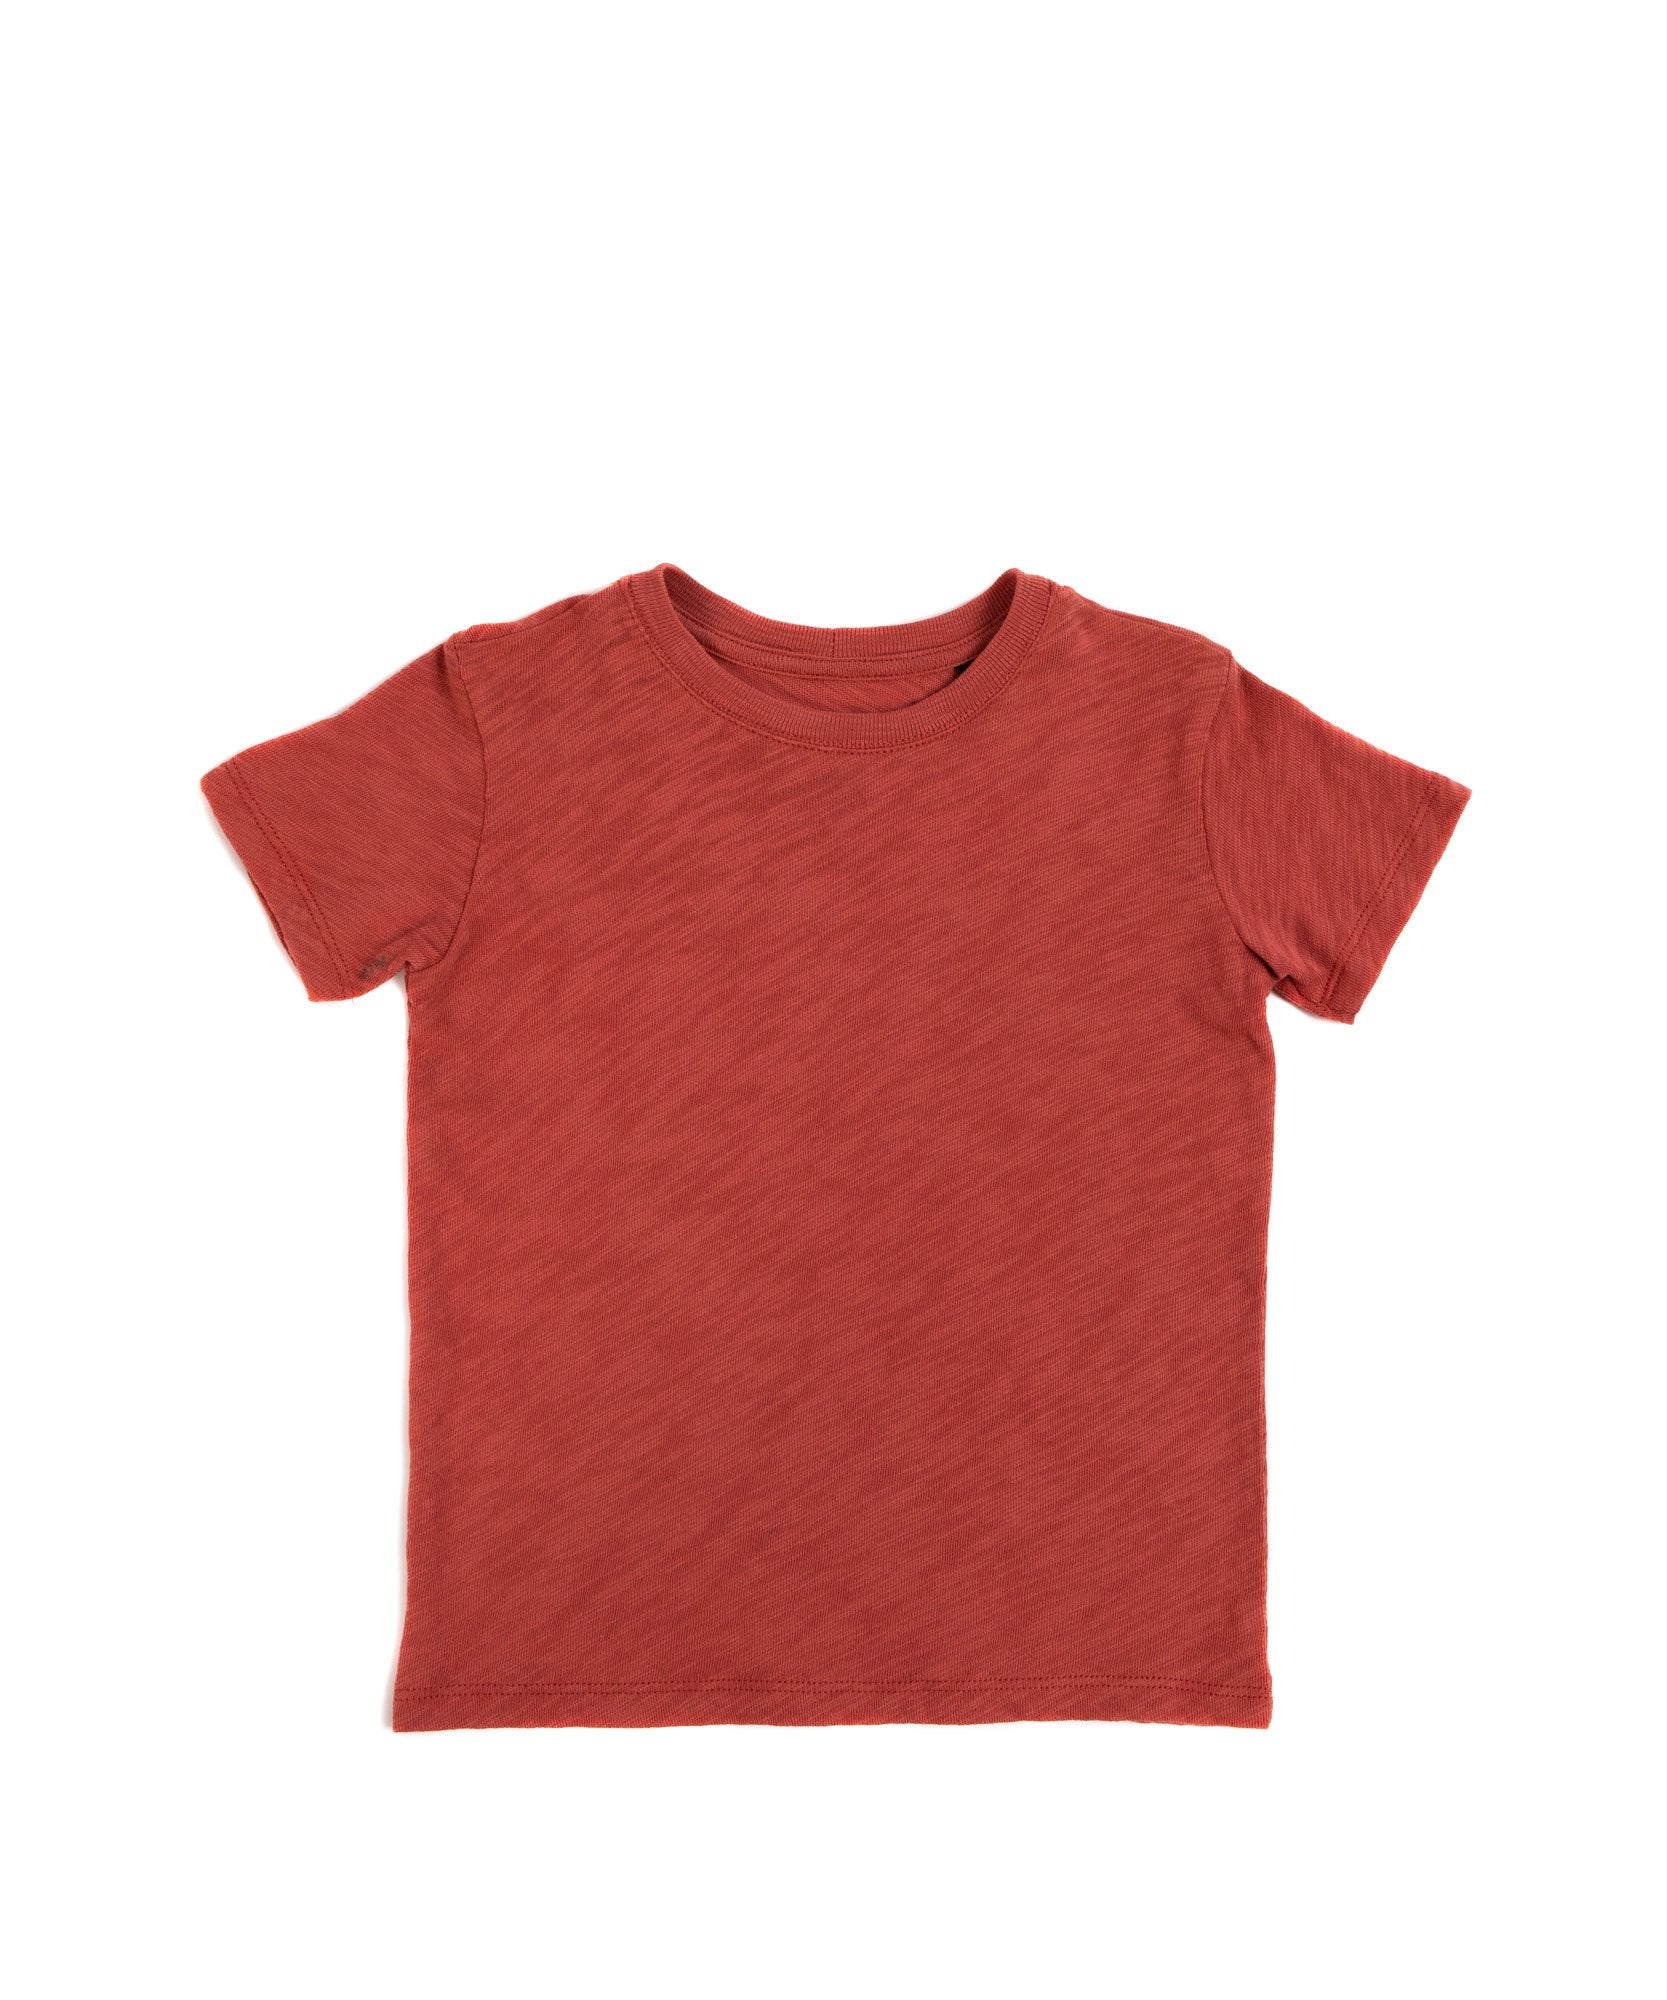 Cedar Kids Slub Jersey Short Sleeve Tee - Kid's Cotton Short Sleeve Tee by ATM Anthony Thomas Melillo